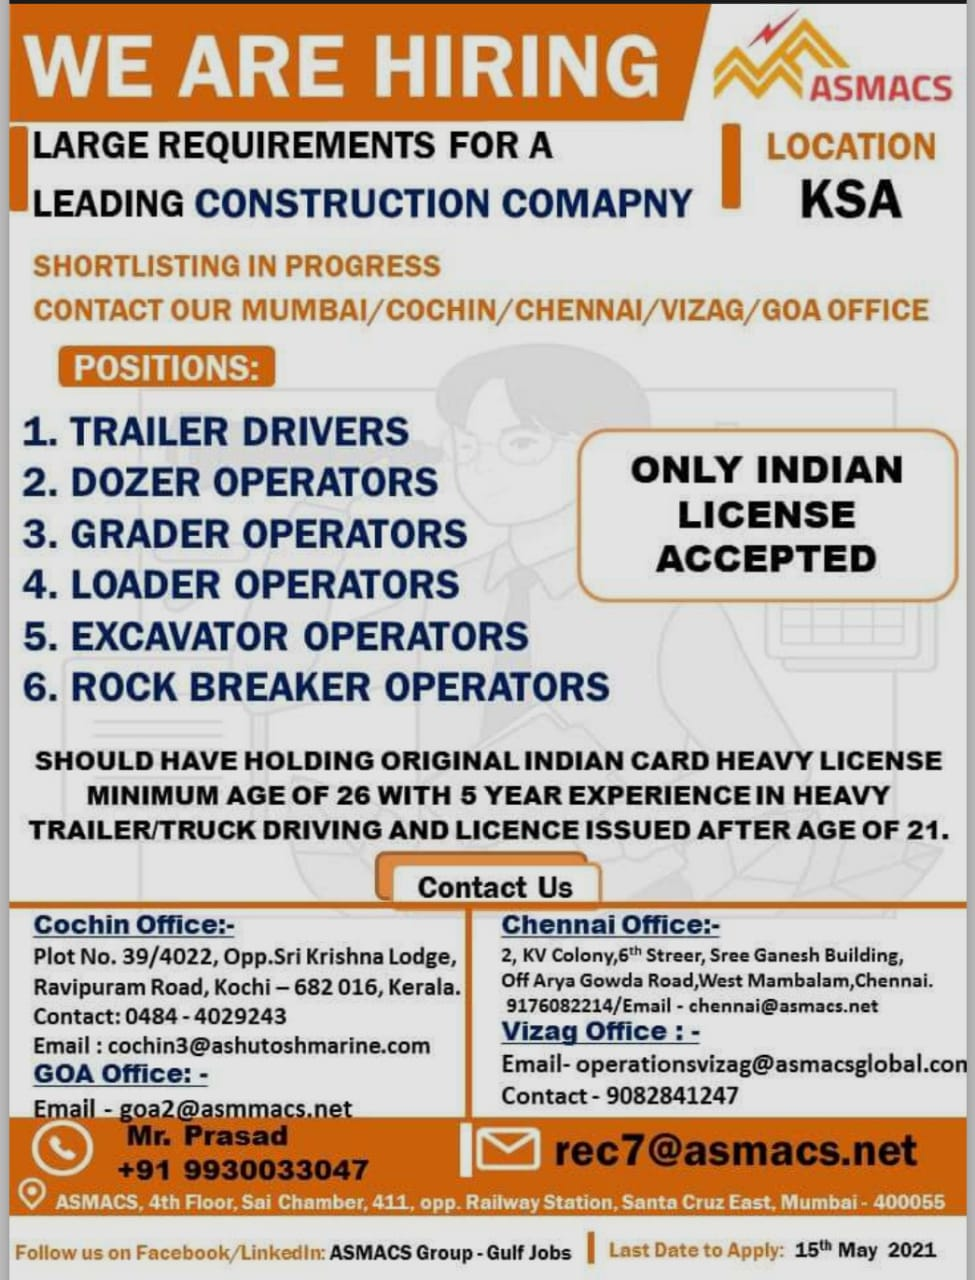 REQUIREMENT FOR LEADING CONSTRUCTION COMPANY IN KSA